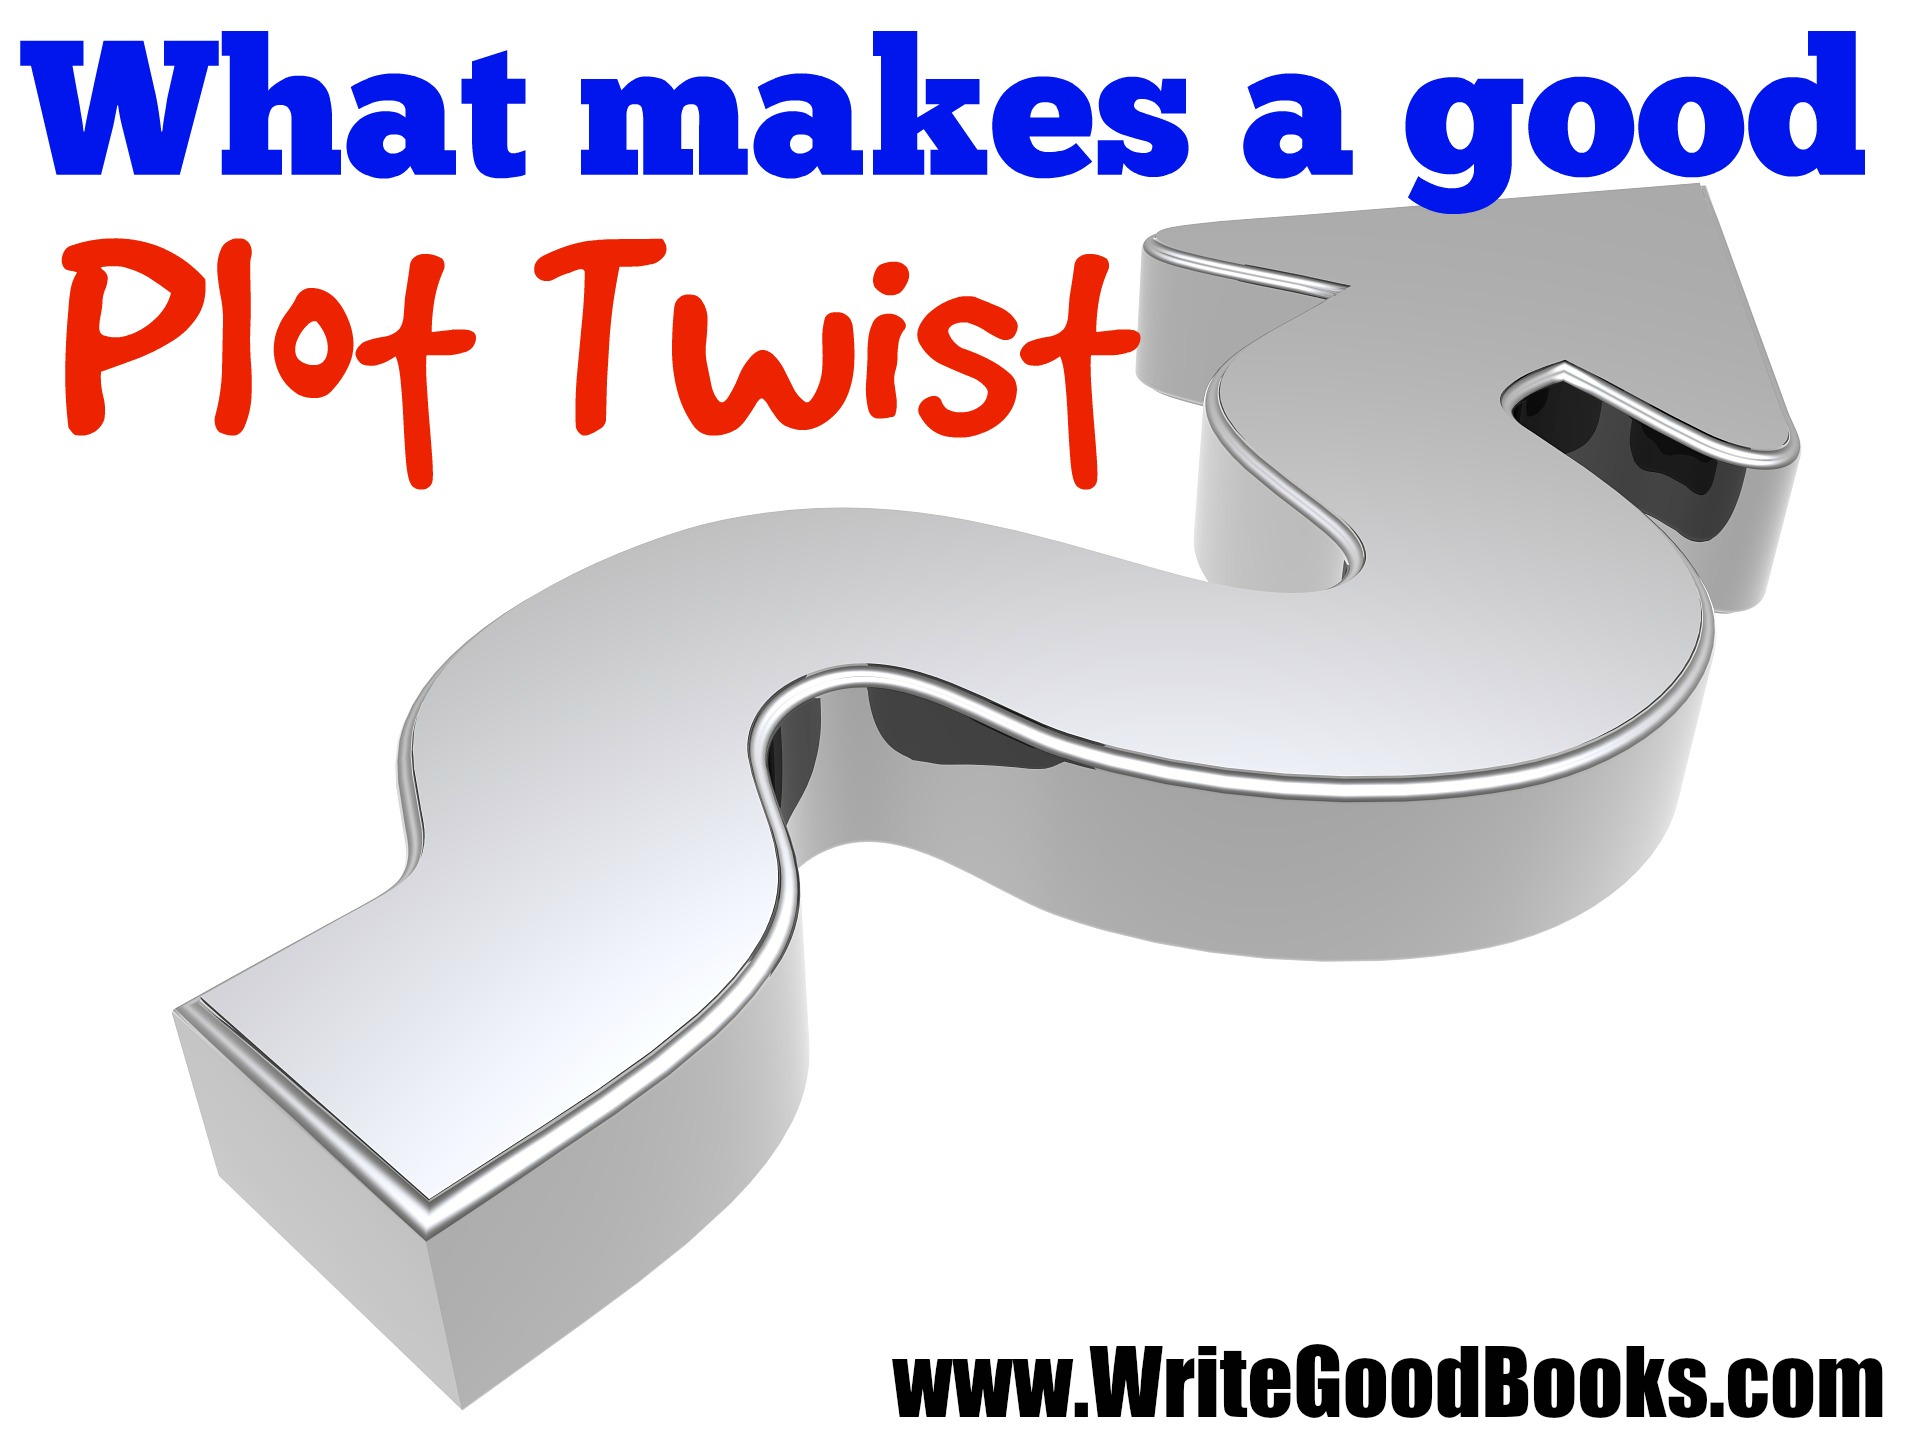 How to write a good plot twist